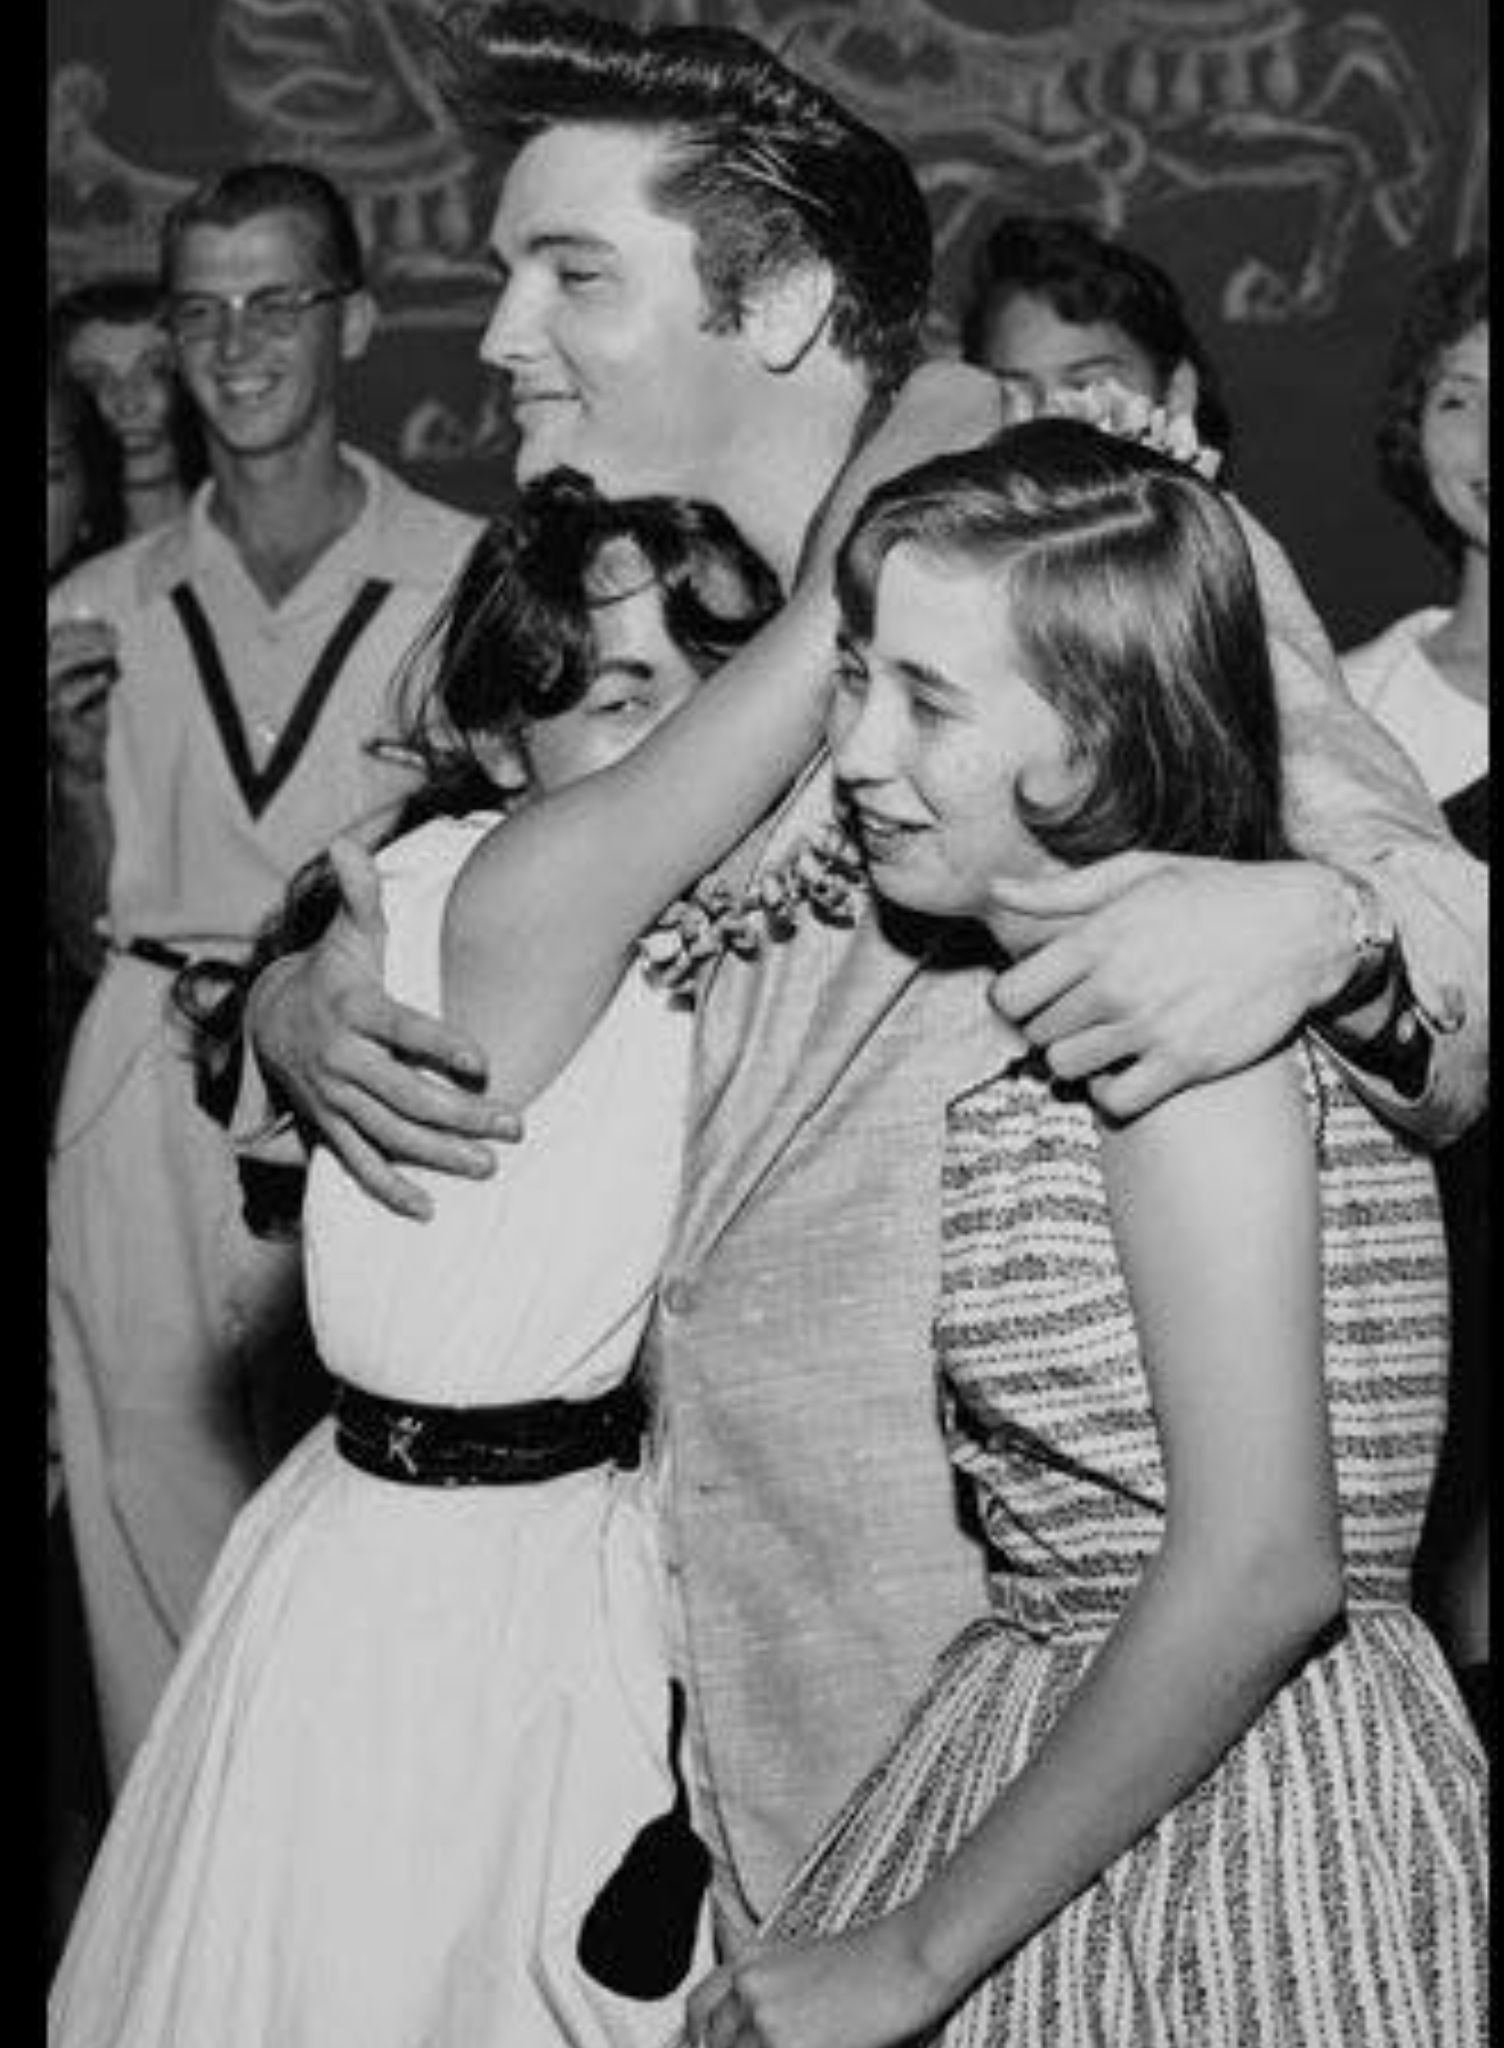 Elvis showing fans some love. What a sweetheart. ❤️ | Elvis today, Elvis  presley, Elvis presley photos